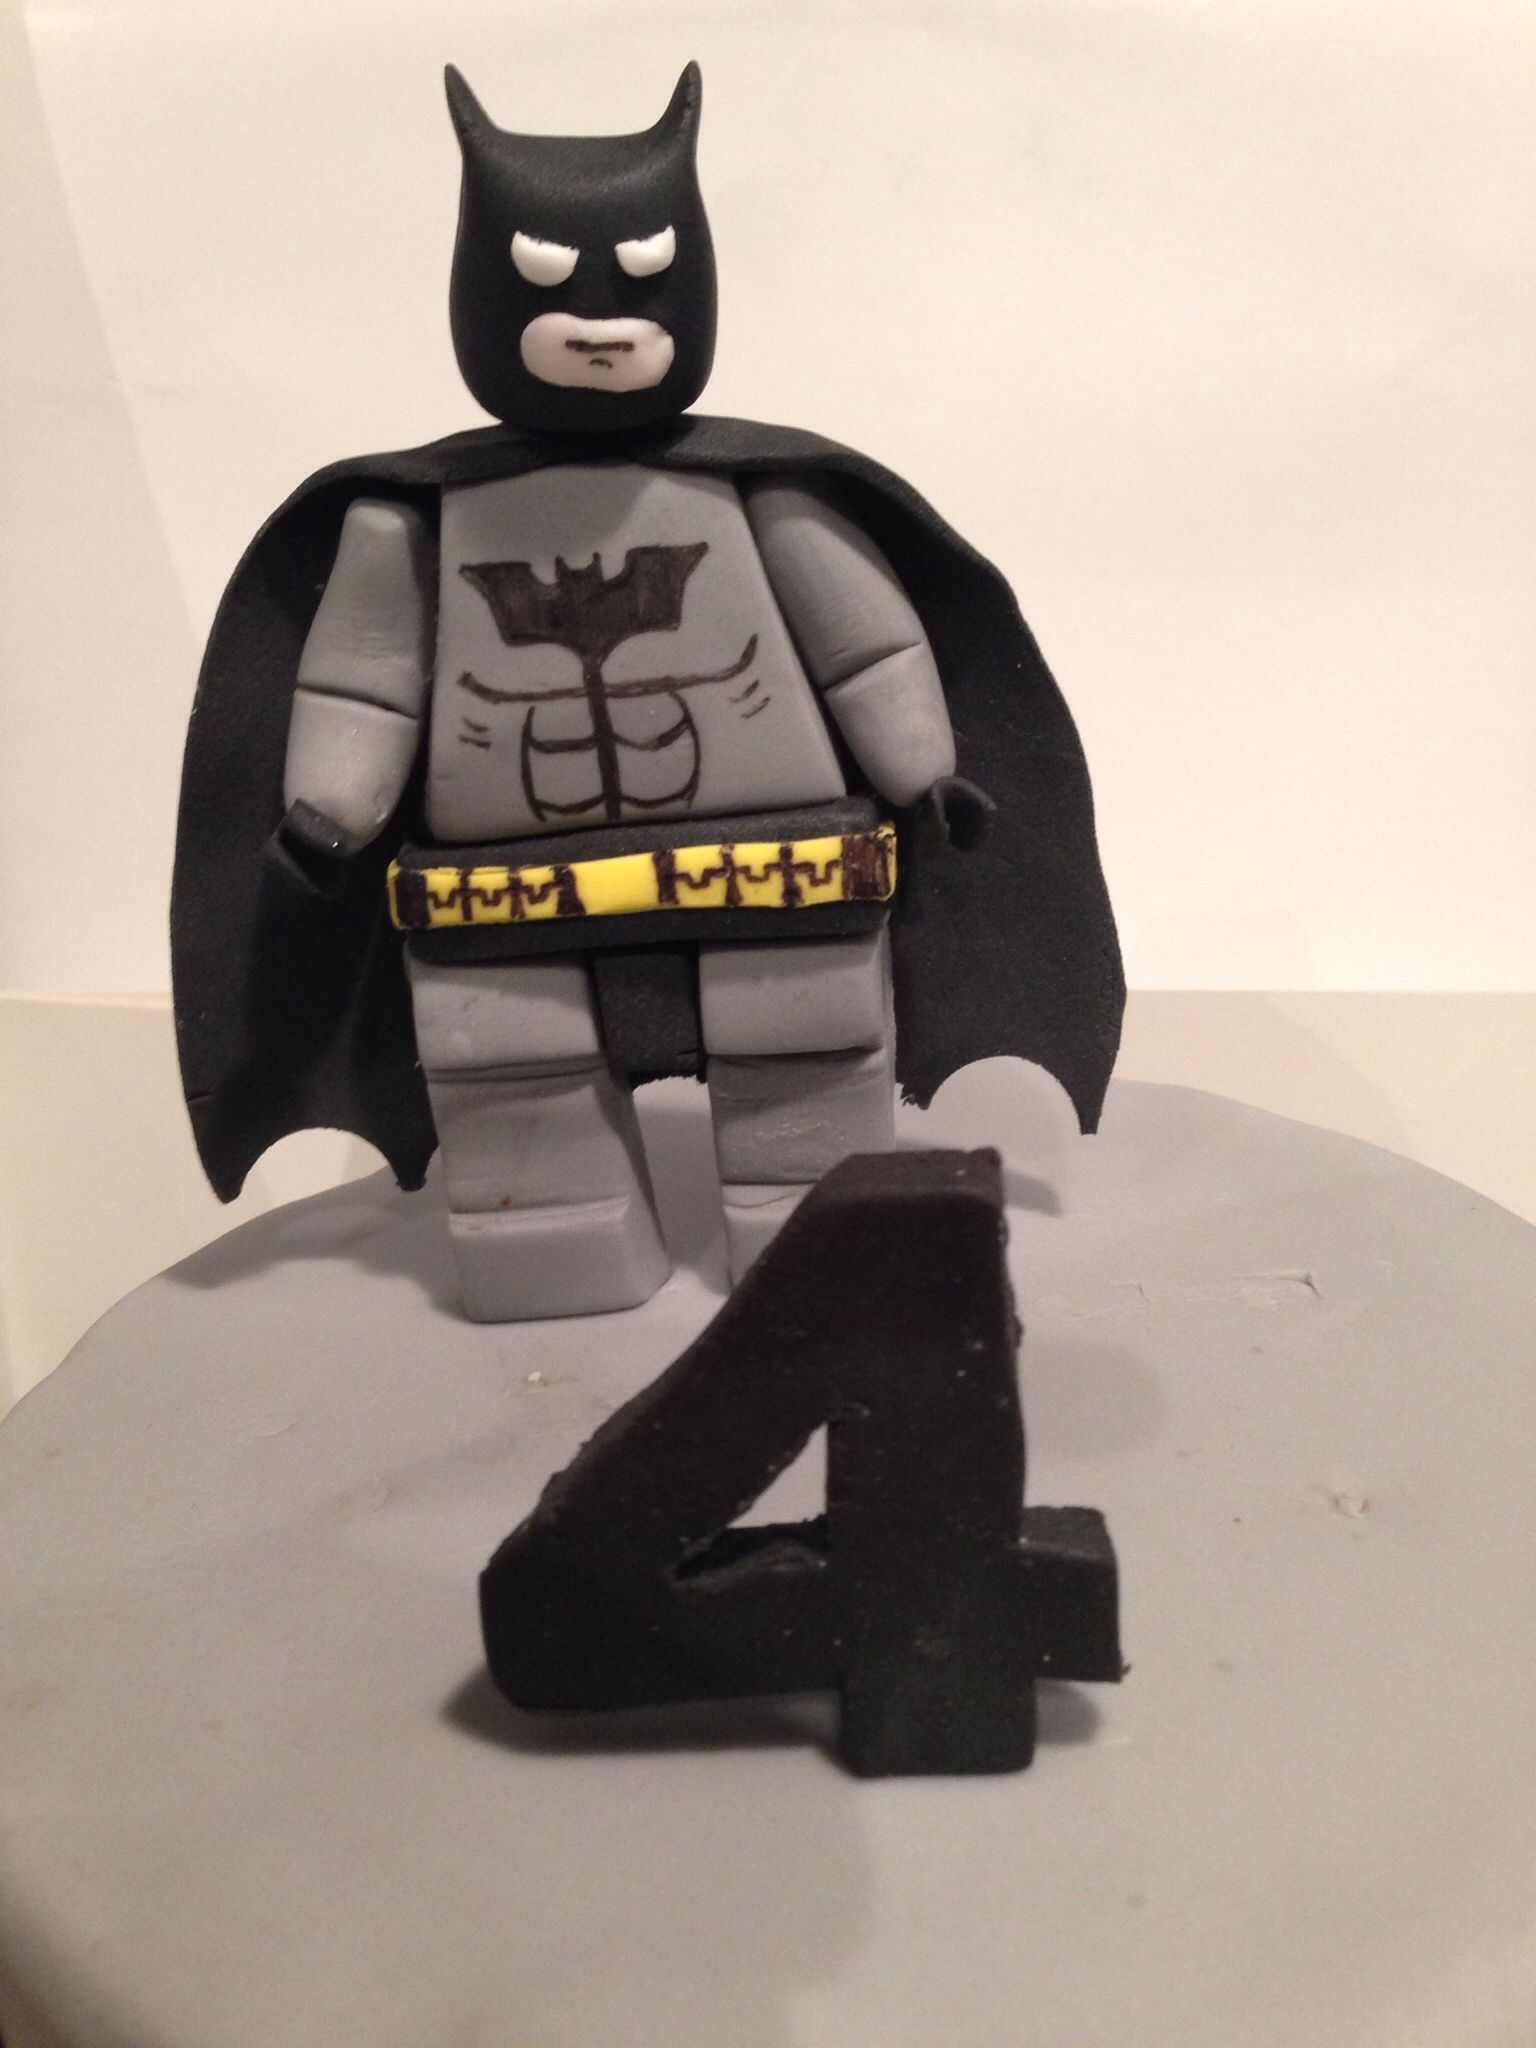 Lego batman cake topper. Used tutorial from zoes fancy cakes.